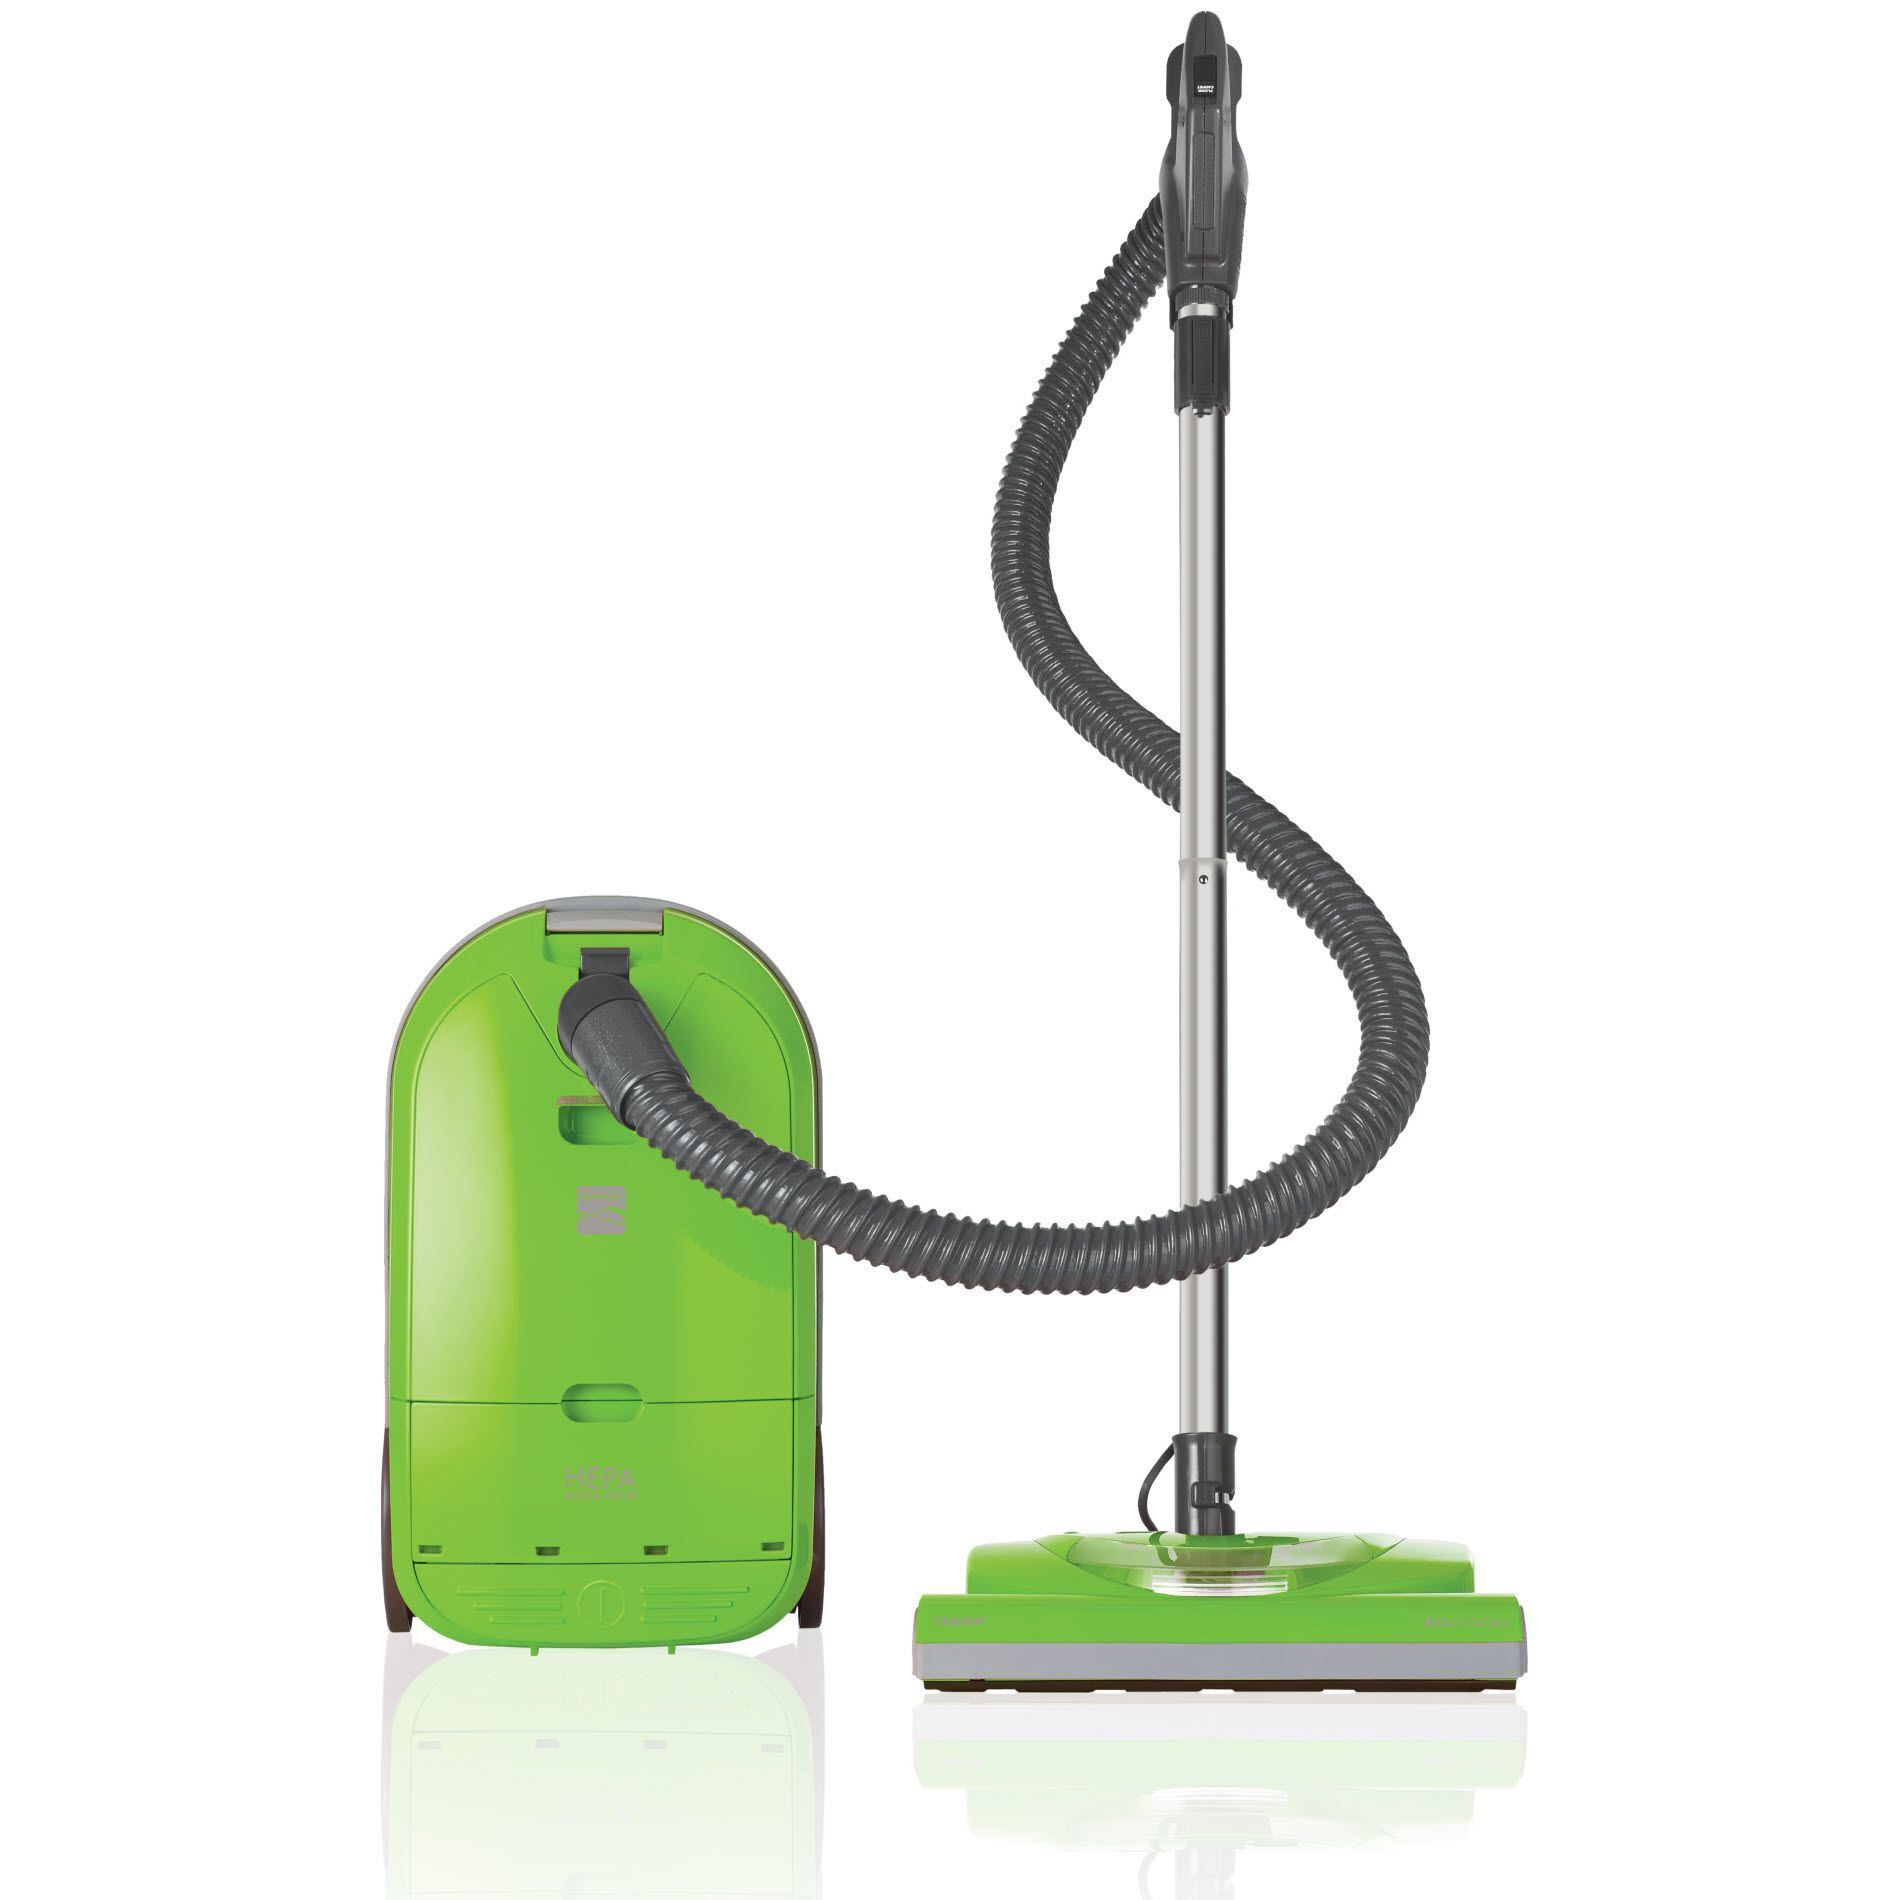 Kenmore Canister Vacuum Cleaner Vacuum With Versatility At Sears Canister Vacuum Canister Vacuum Cleaner Vacuum Cleaner